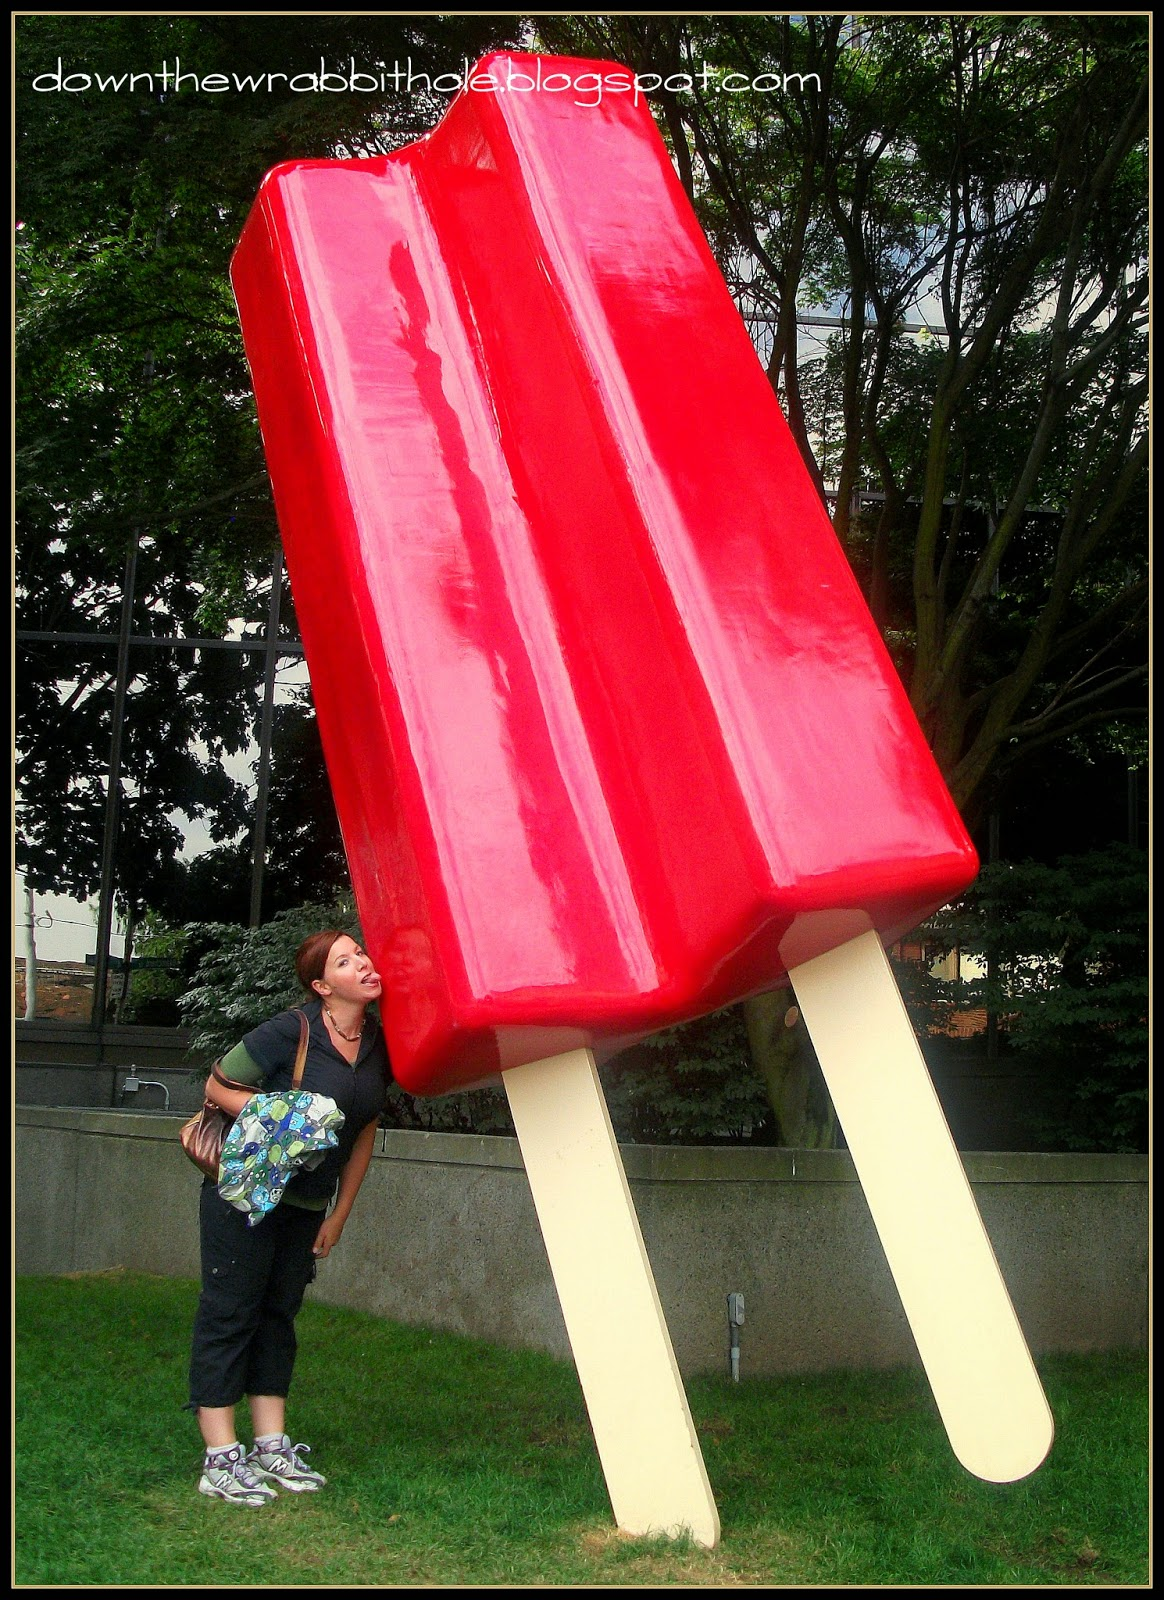 Seattle street art giant Popsicle red